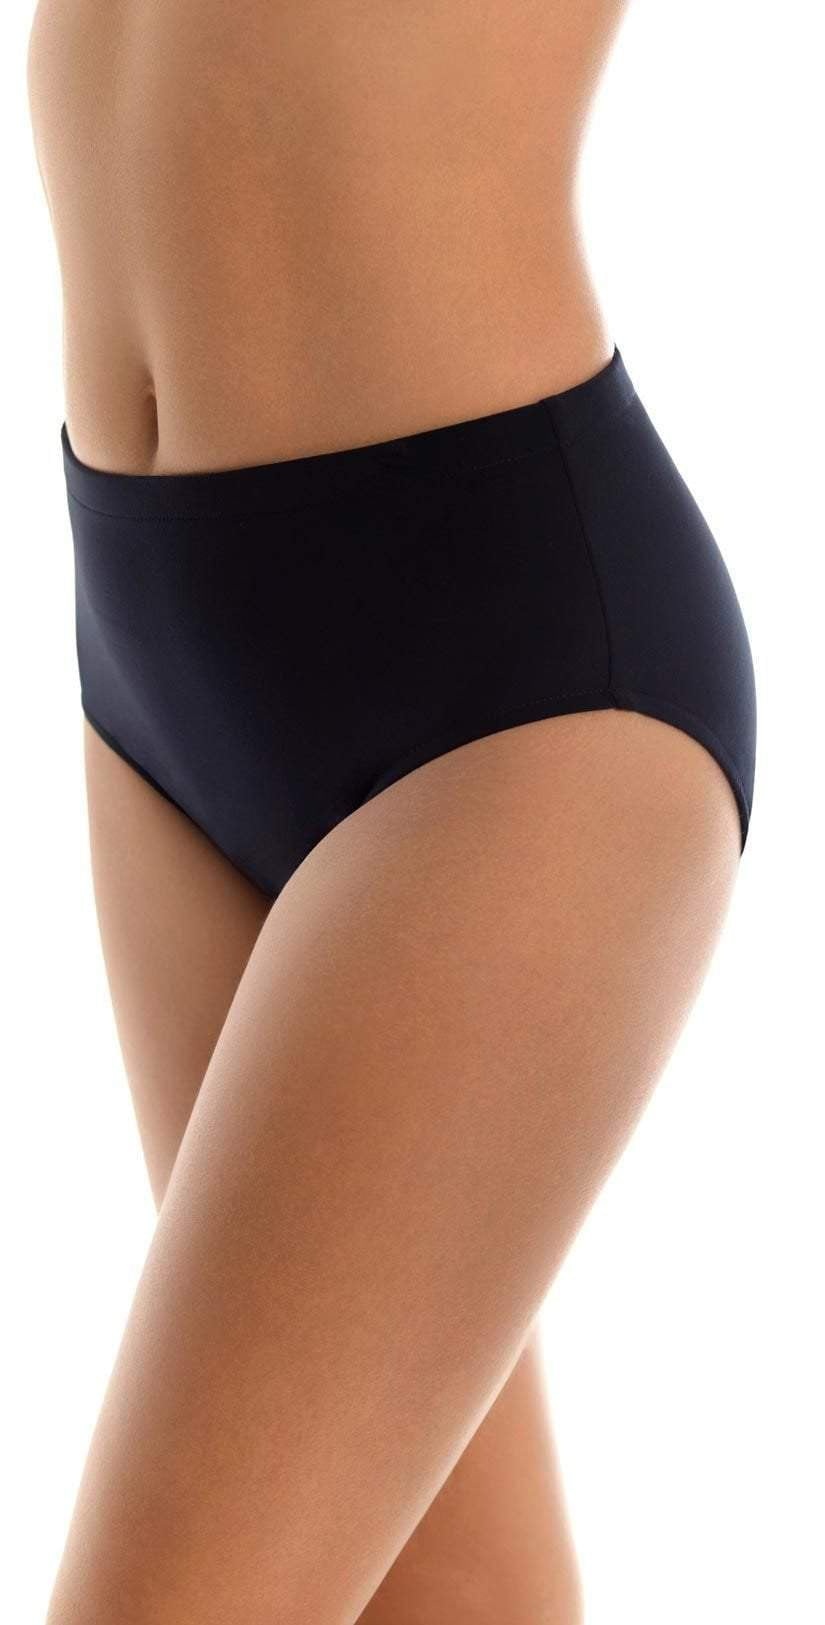 Magicsuit Jersey Classic Bottom in Black 453638-BLK: